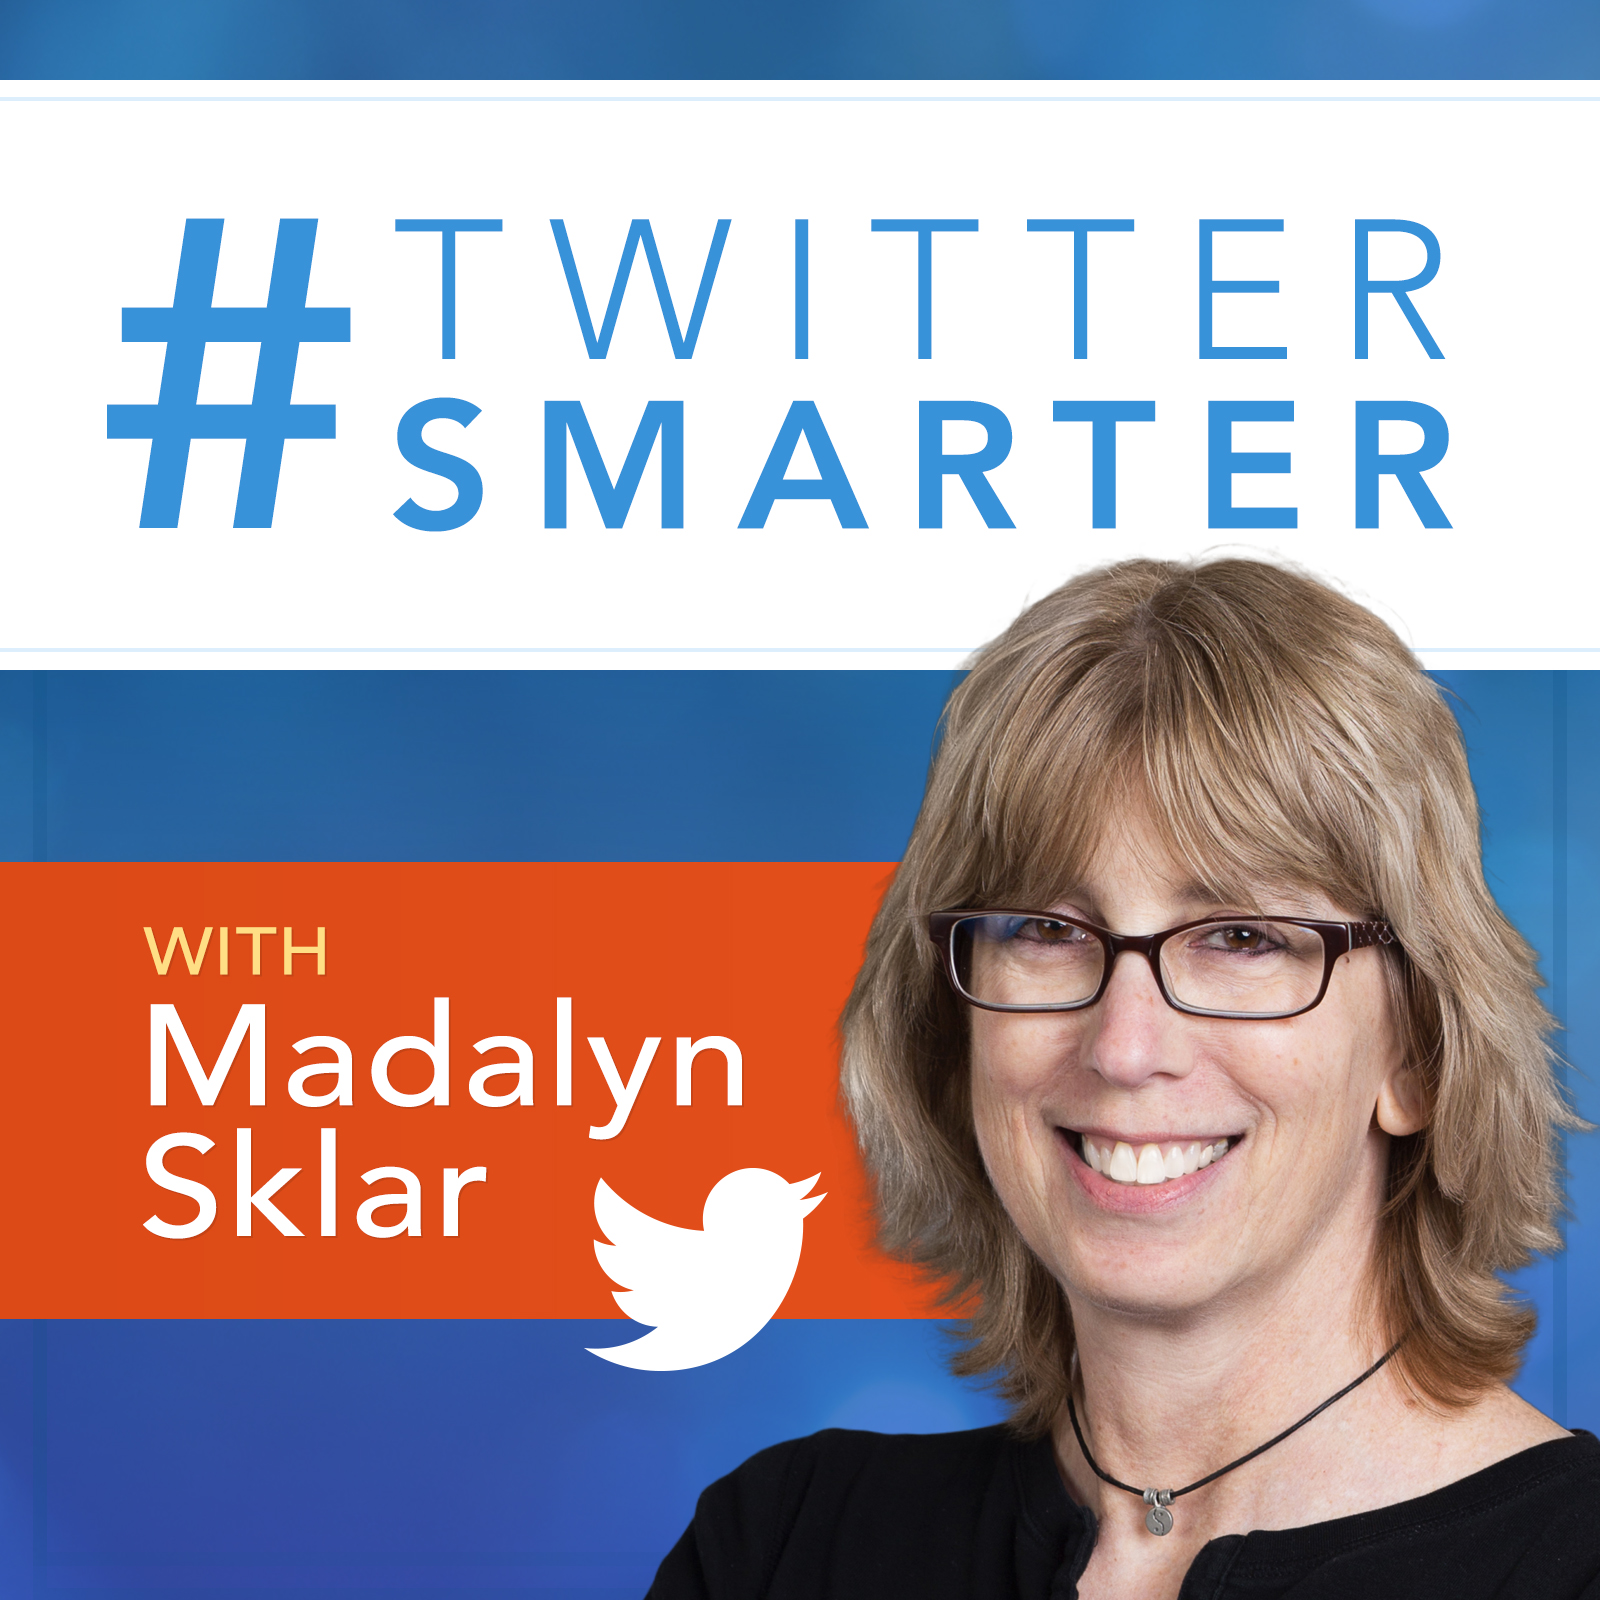 Twitter Smarter Podcast with Madalyn Sklar - The Best Twitter Tips from the Pros: 78. Twitter Tips on Personal Branding and Social Selling, with Nick Martin